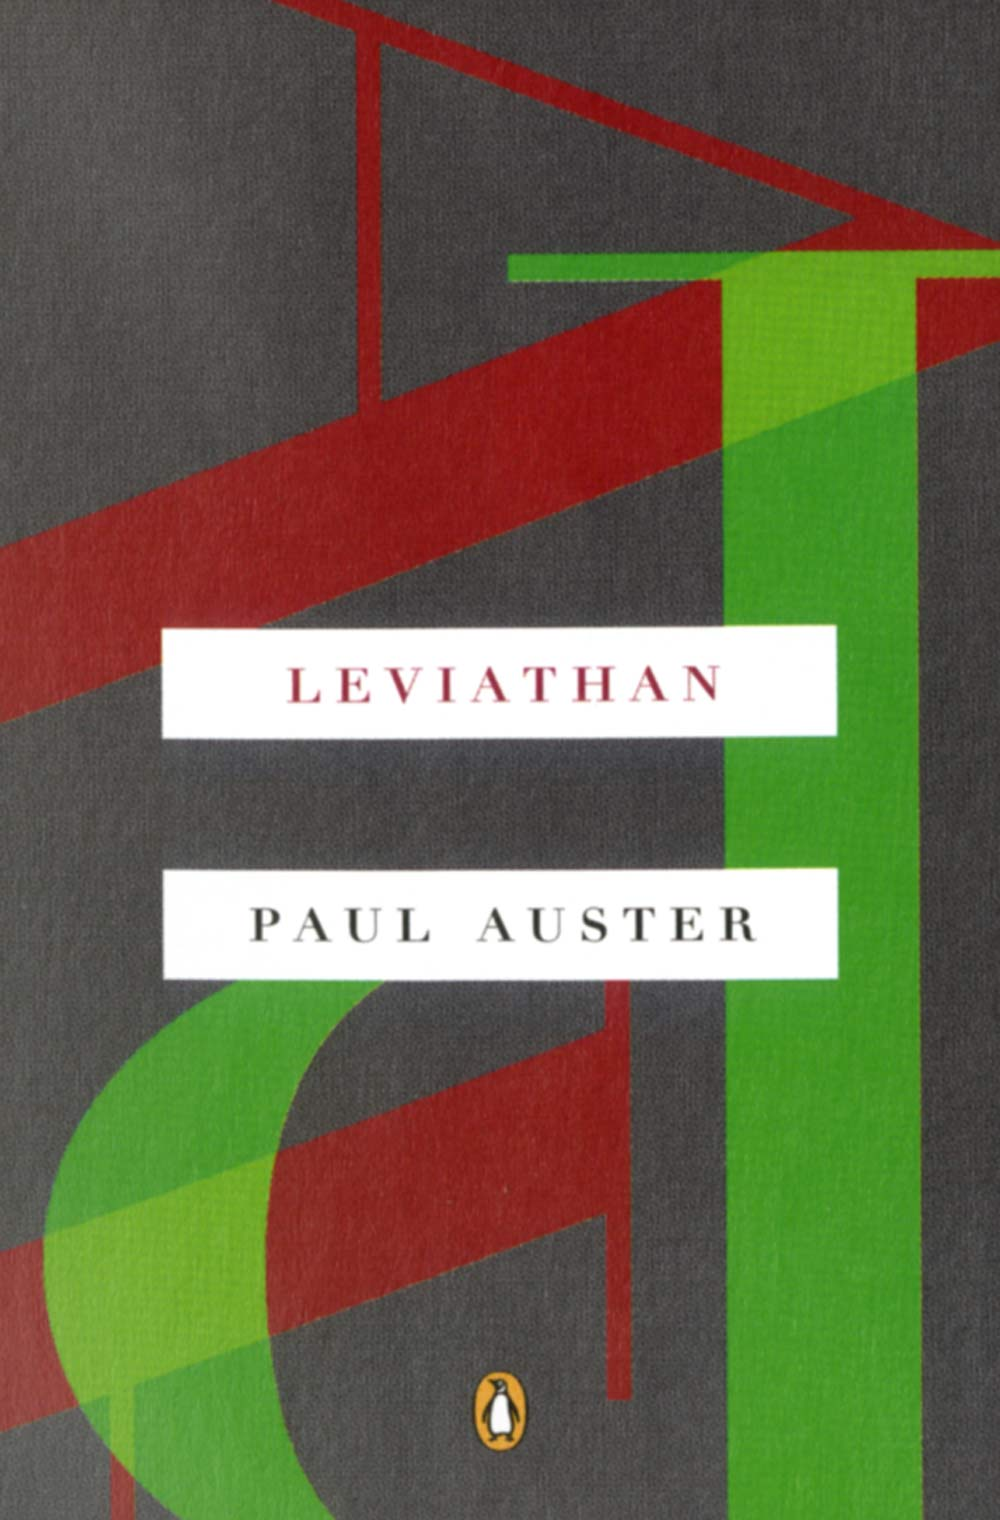 auster essay leviathan Essays and criticism on paul auster, including the works the new york trilogy, in the country of last things, moon palace, the music of chance, leviathan, the book of illusions, oracle night, the brooklyn follies, travels in the scriptorium - critical survey of long fiction.